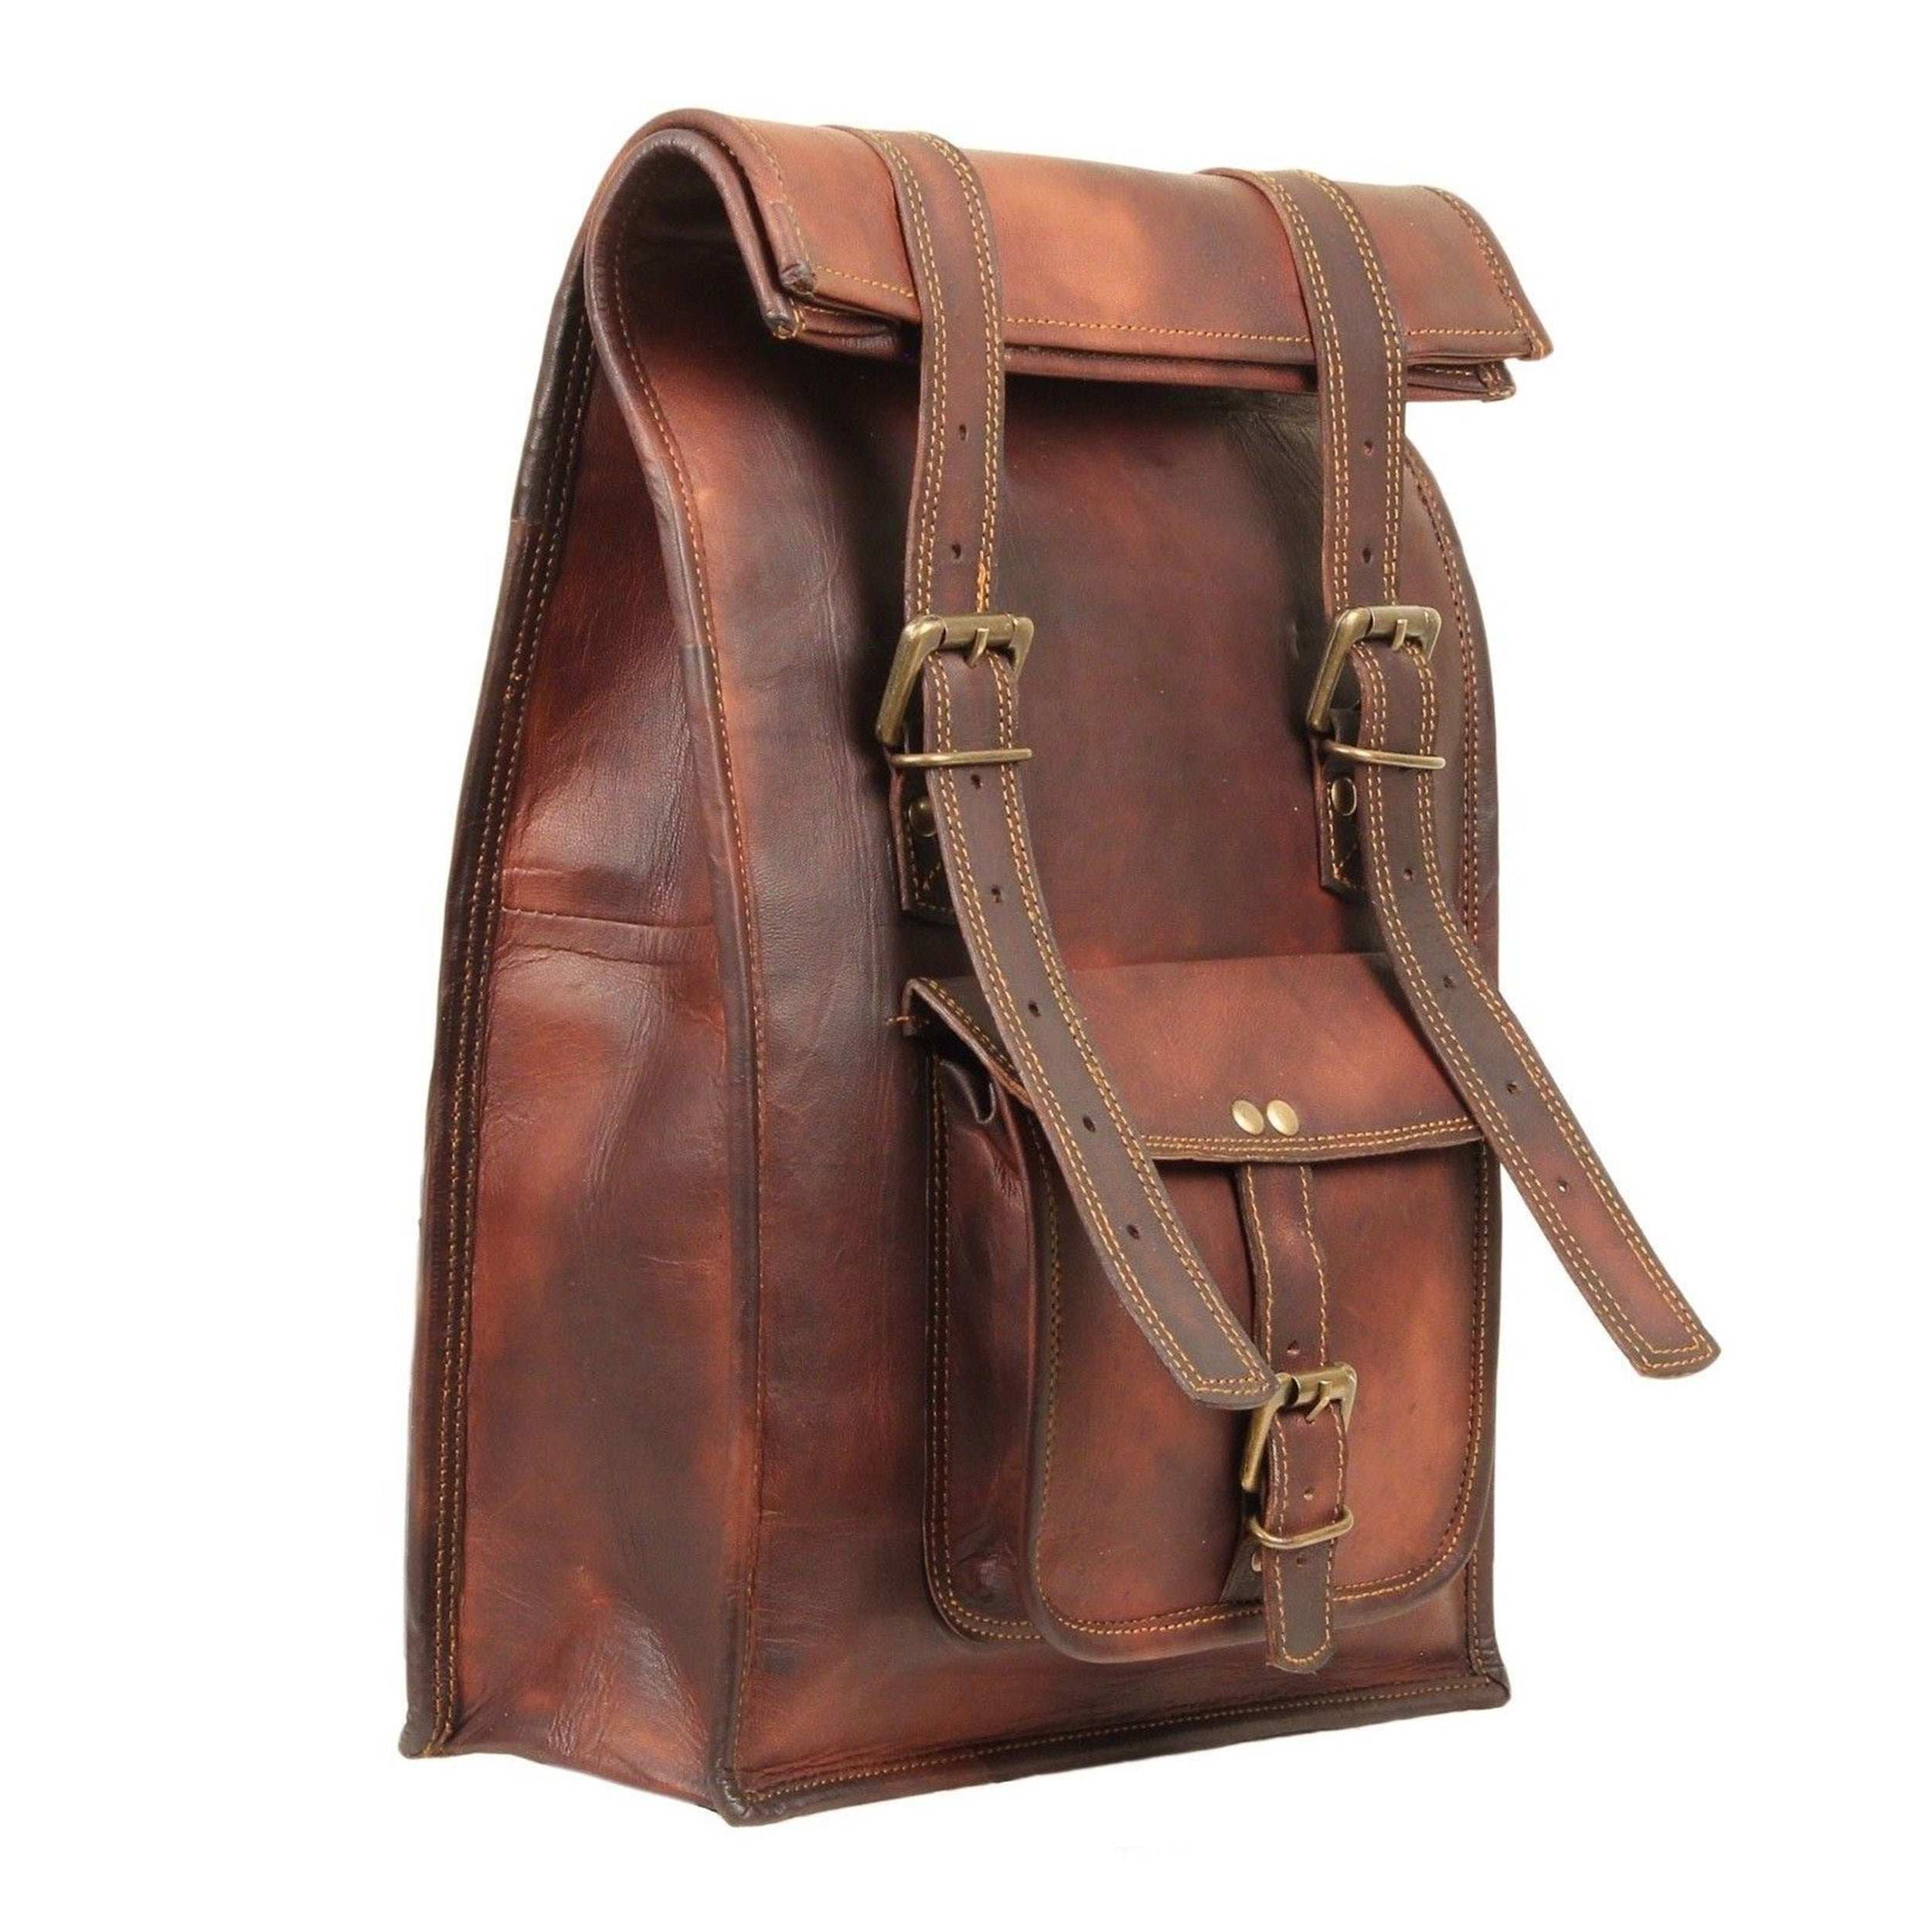 Convertible Leather Backpack by Hulsh